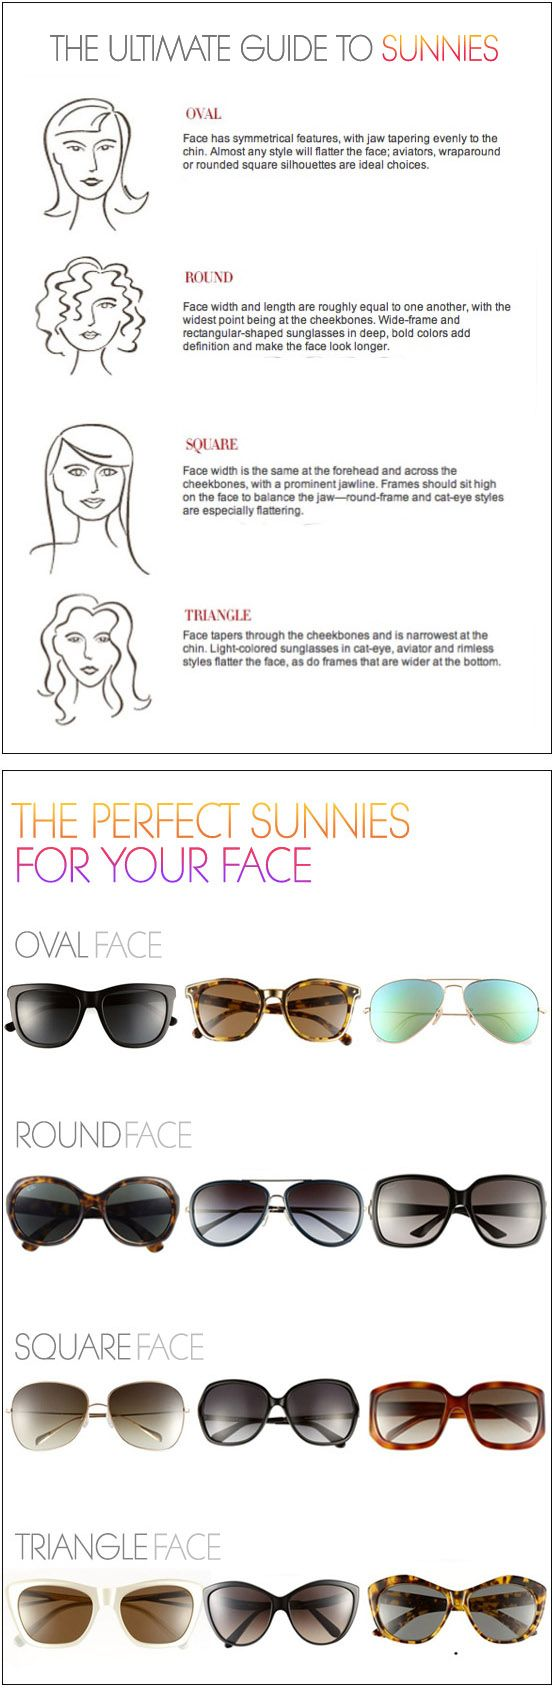 Different eye shapes and how they define your face and personality - How To Pick The Perfect Sunglasses For Your Face